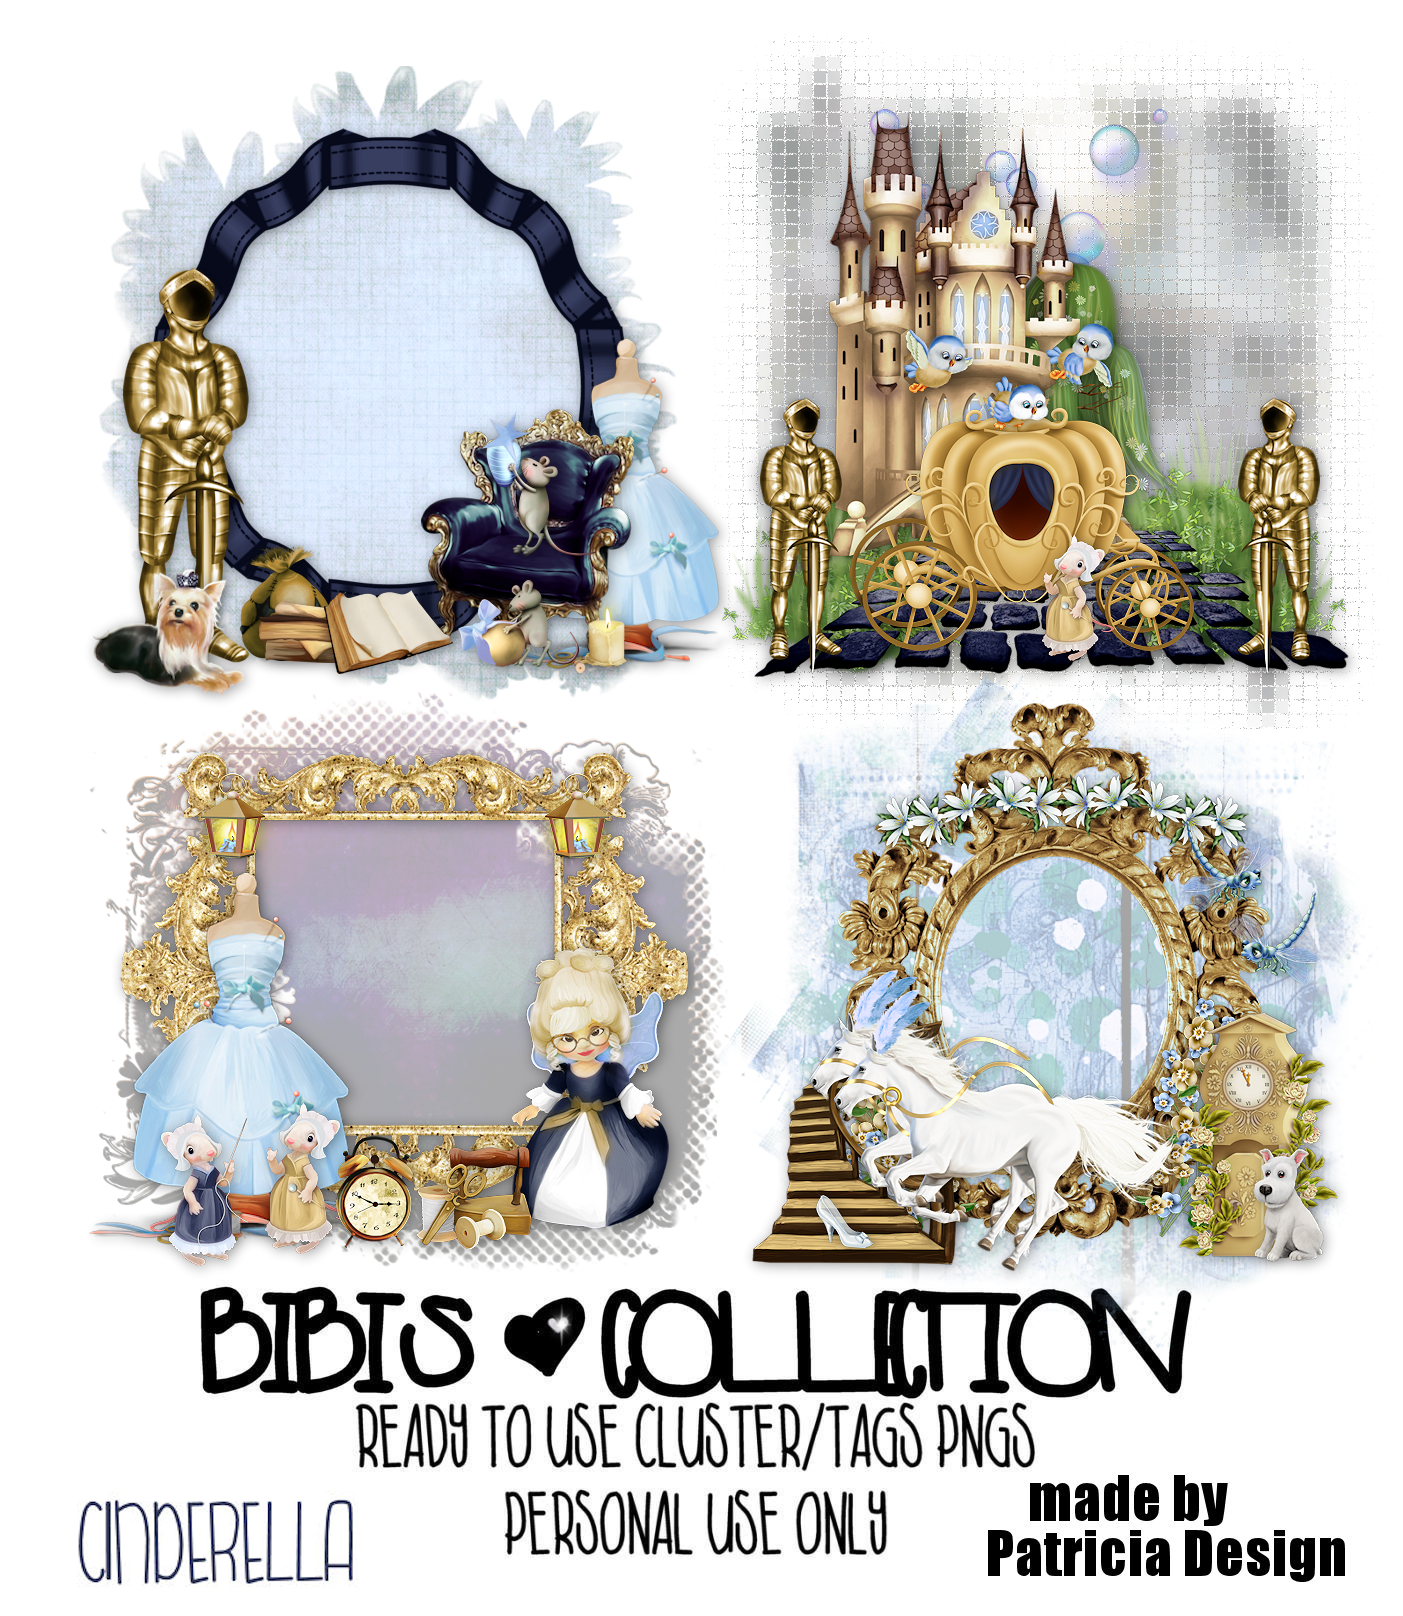 CINDERELLA READY CLUSTER TAGS PNG